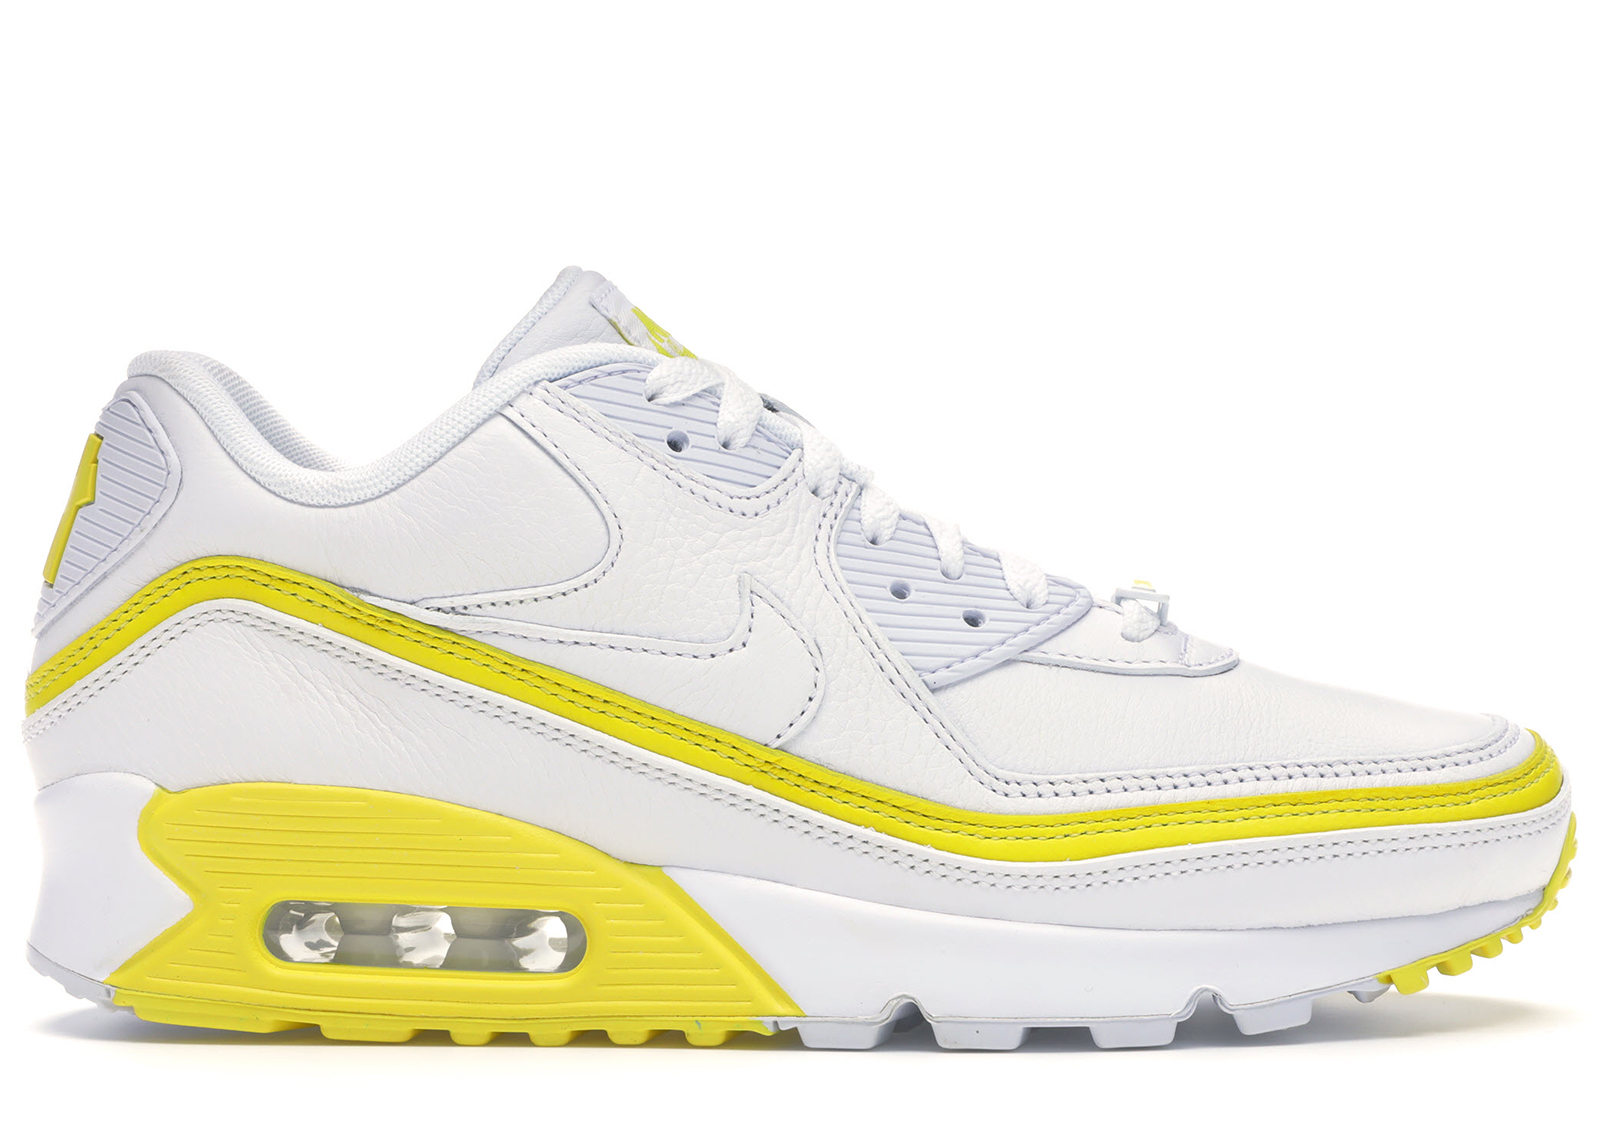 Nike Air Max 90 Undefeated White Optic Yellow